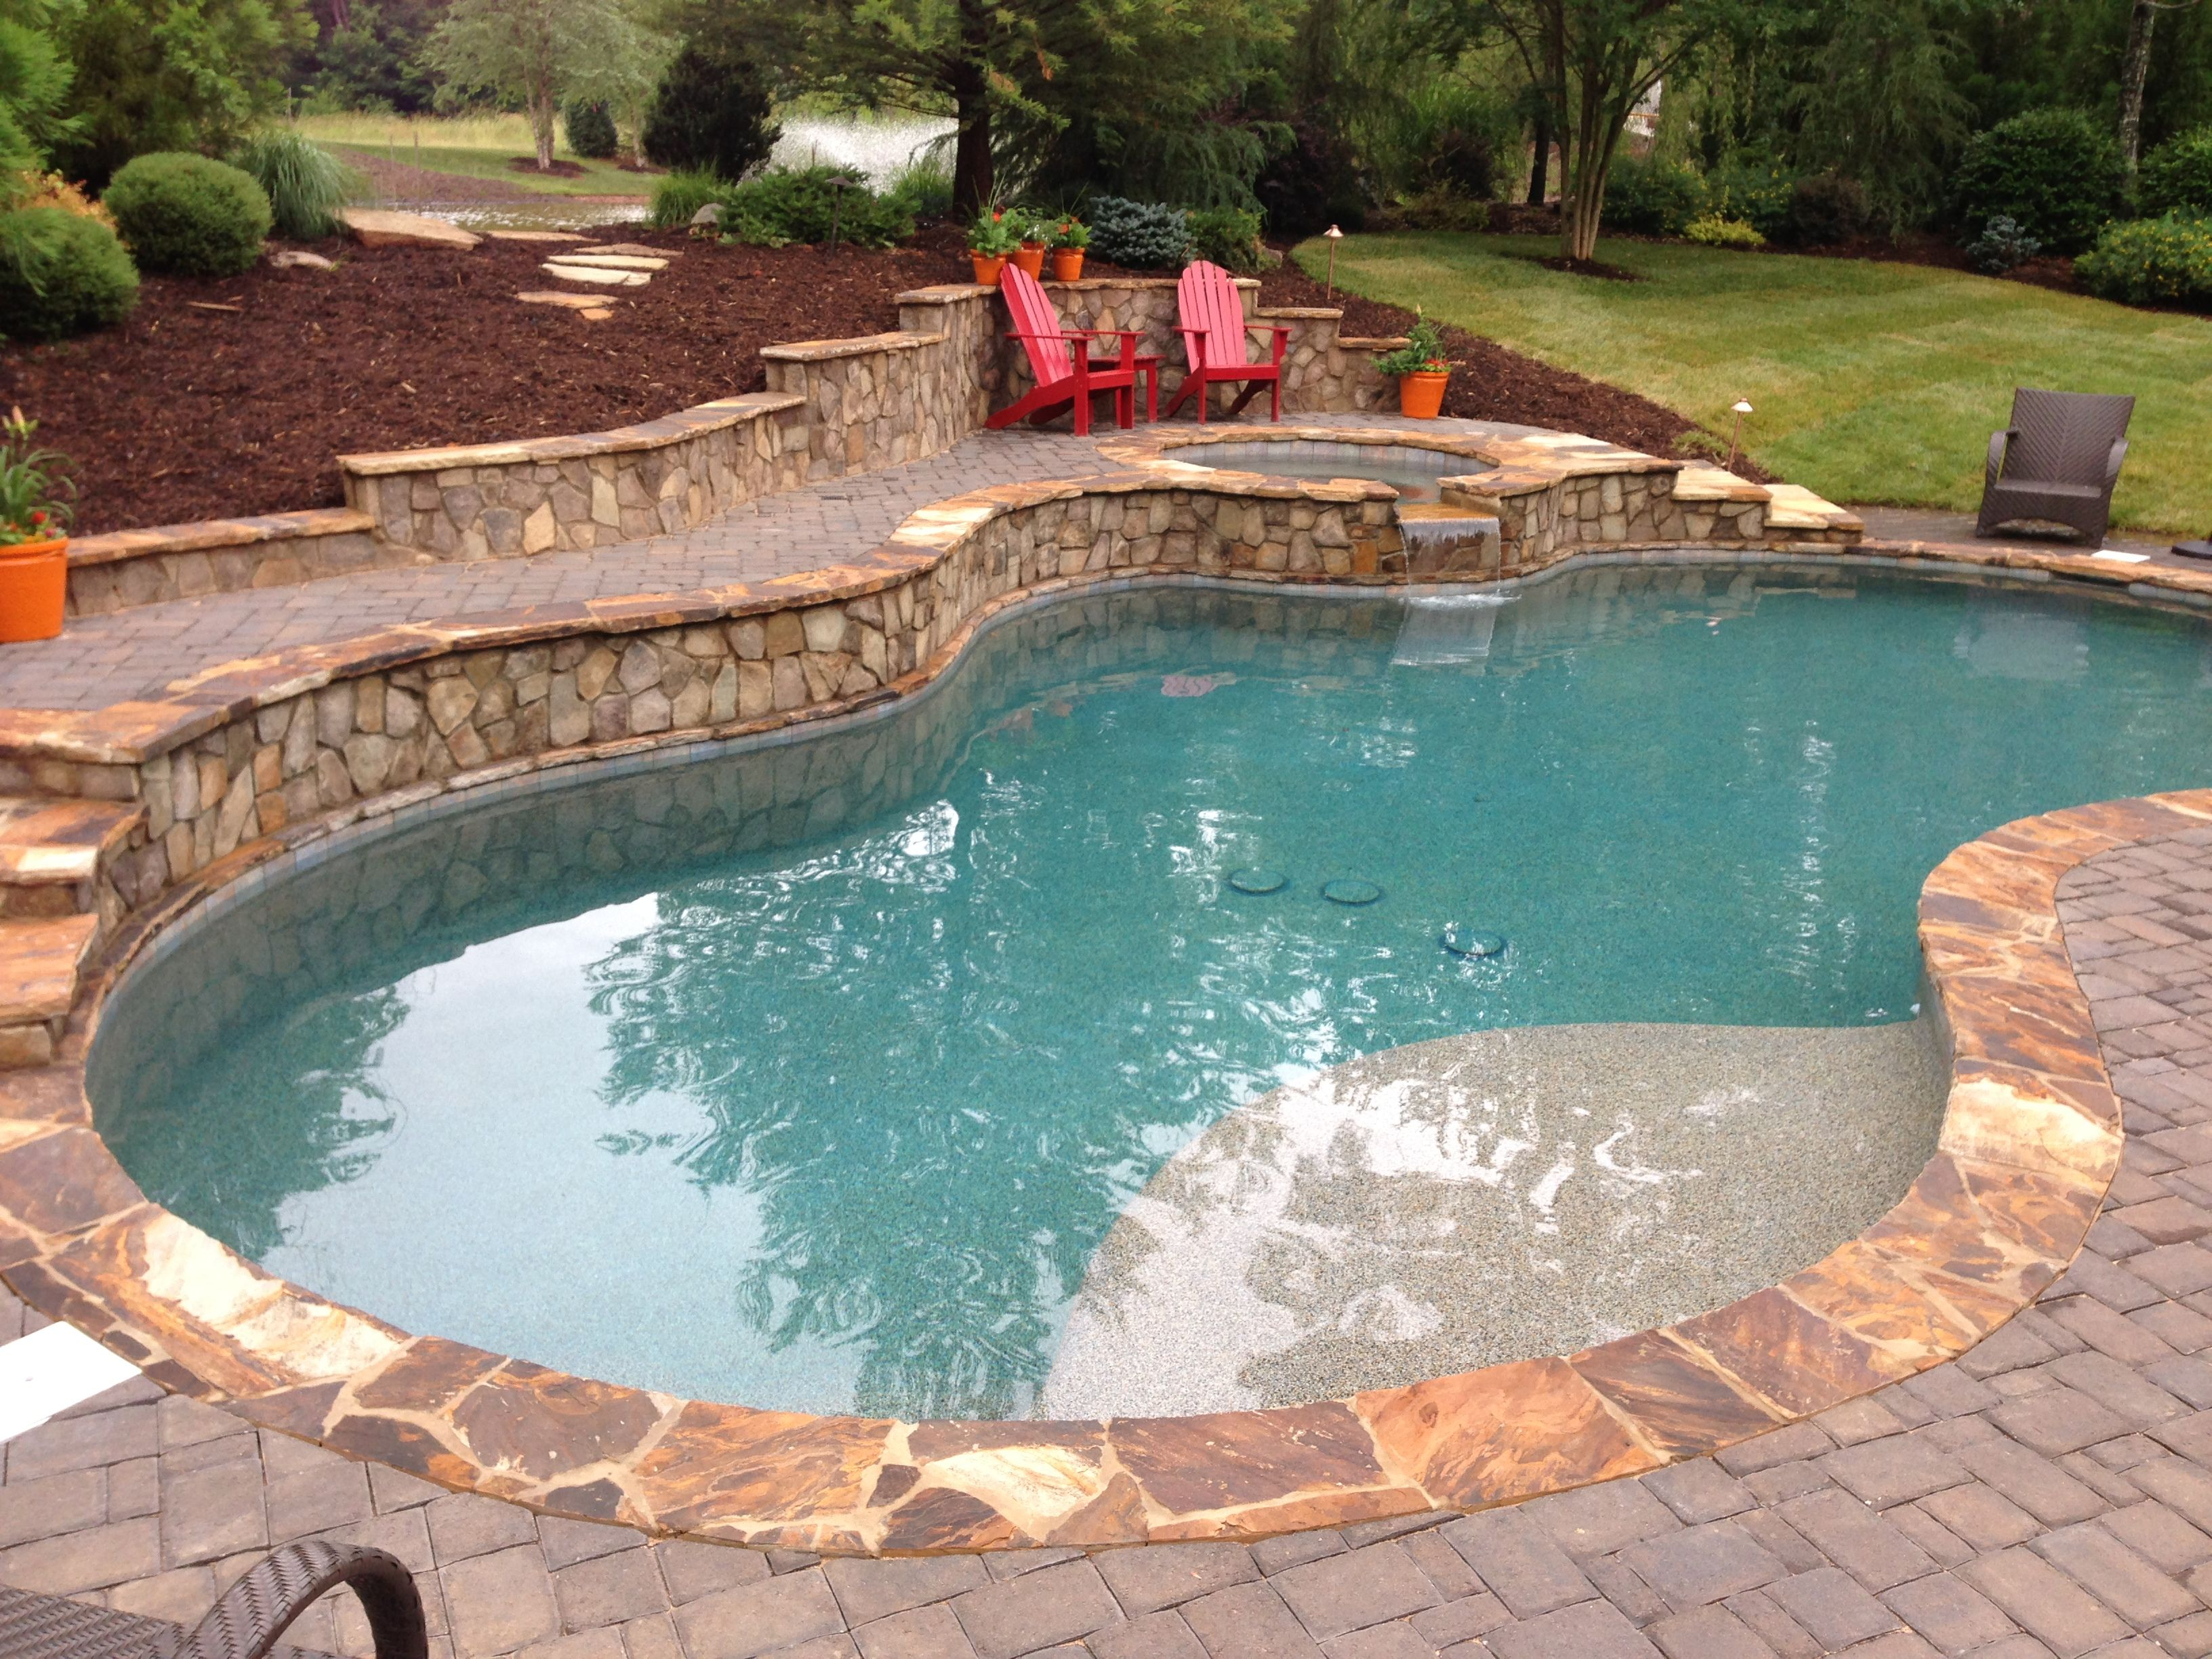 Challenging Yard Due To Elevation Makes For A Beautiful Swimming